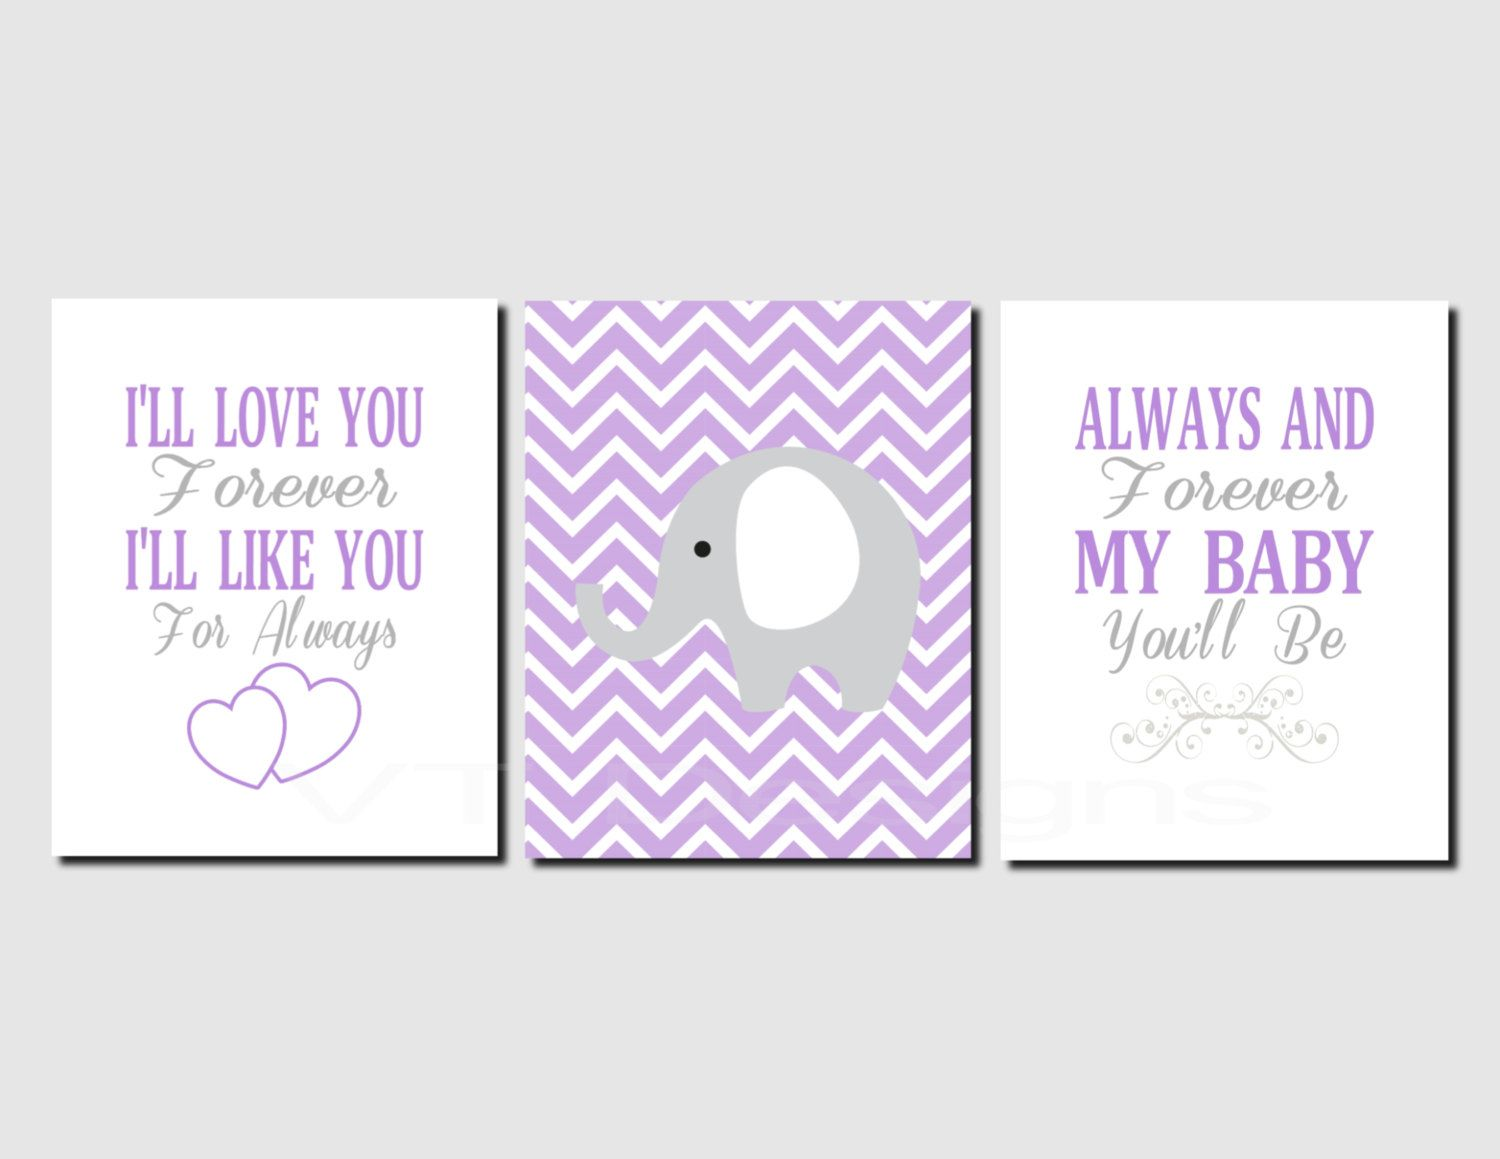 I Ll Love You Forever Quote I'll Love You Forever Girl Nursery Wall Art Purple Gray